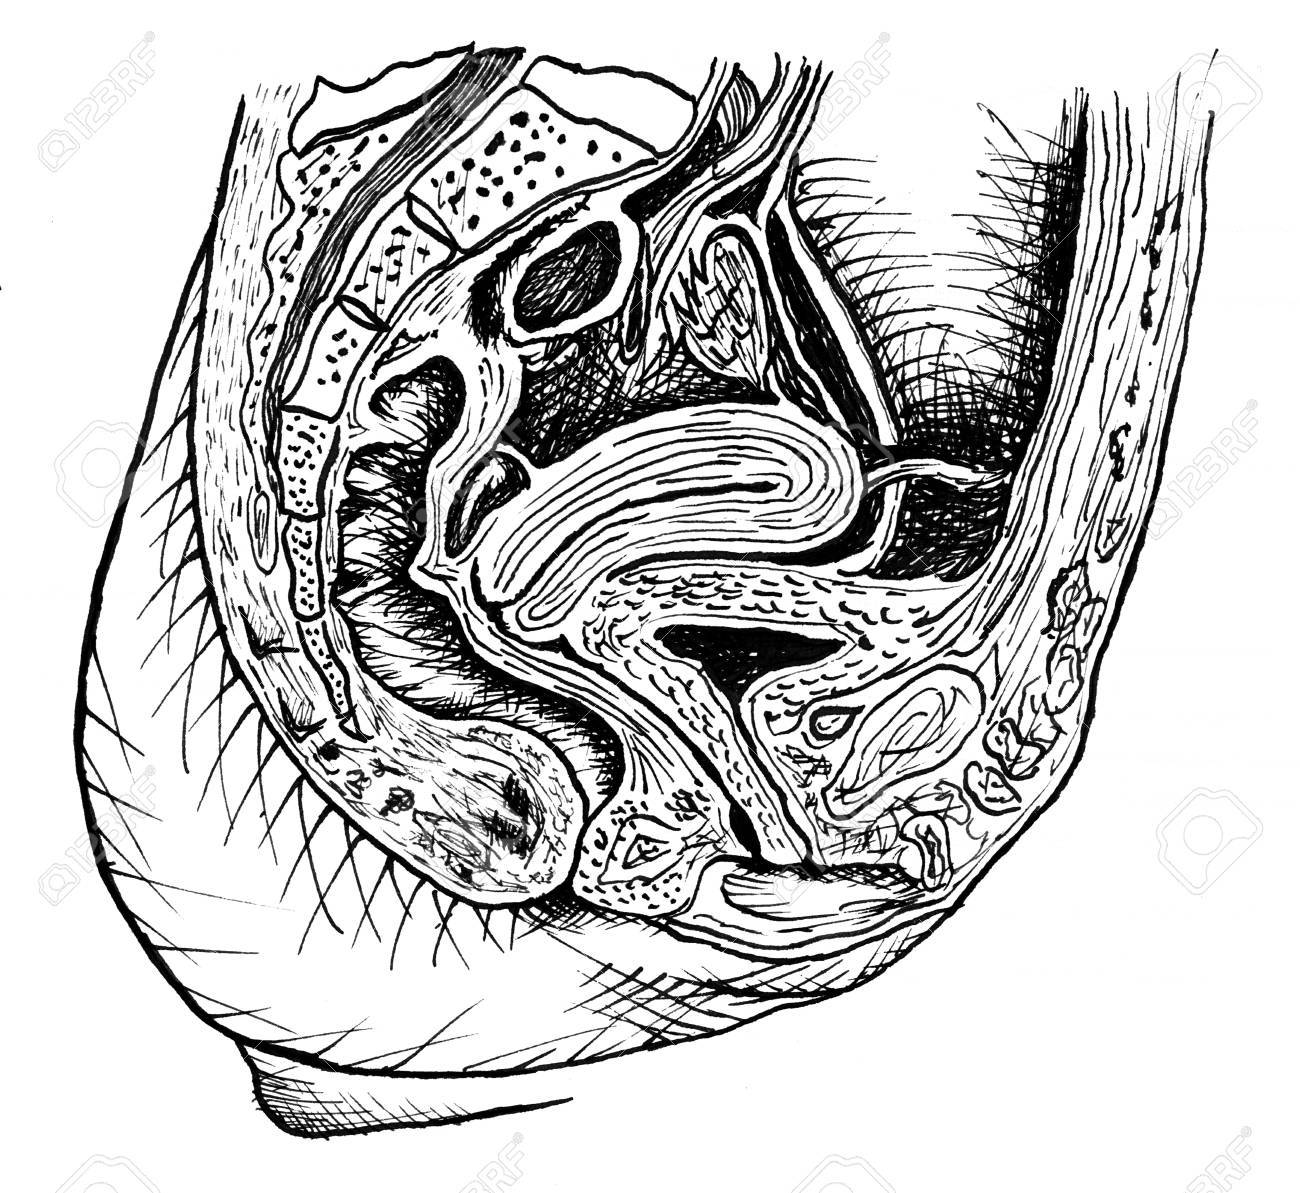 female anatomical section drawing Stock Photo - 11486513